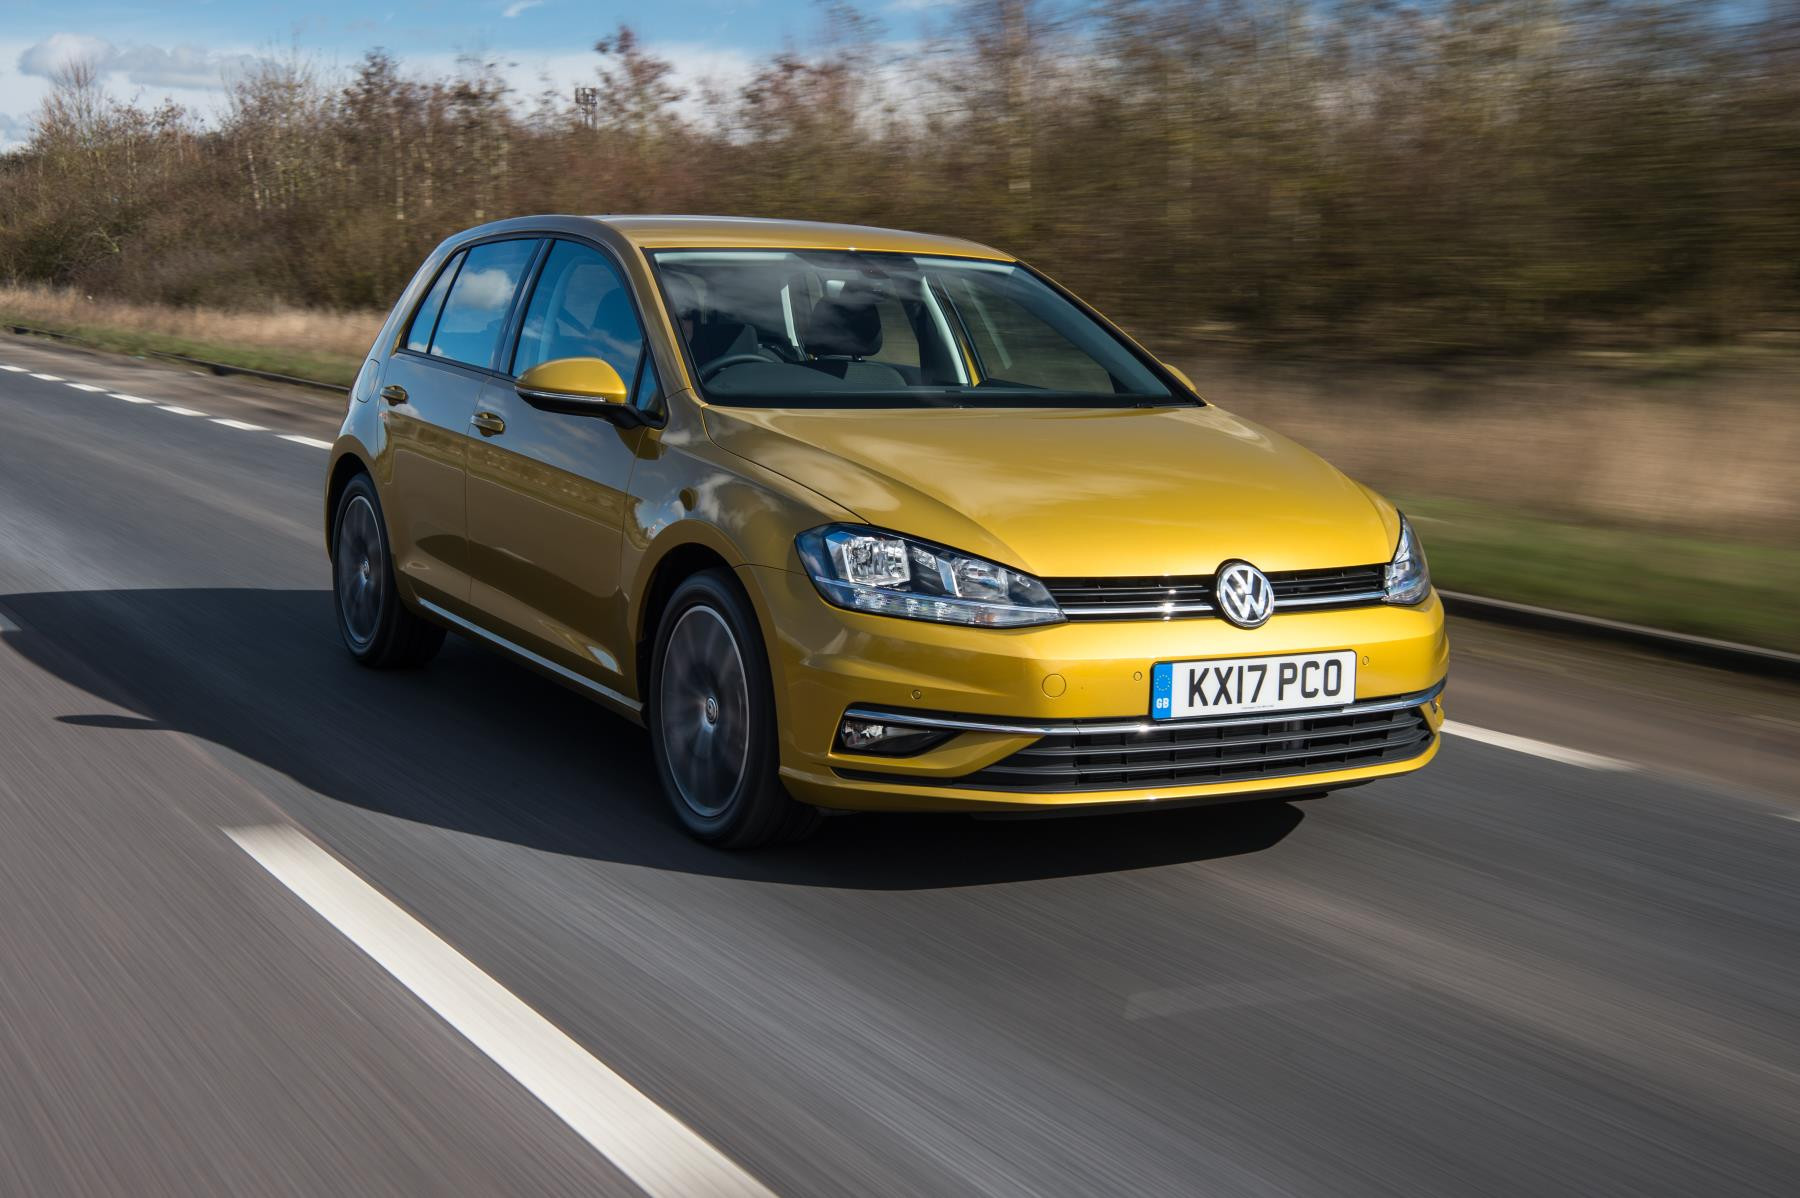 Golden yellow metallic Volkswagen Golf driving towards you